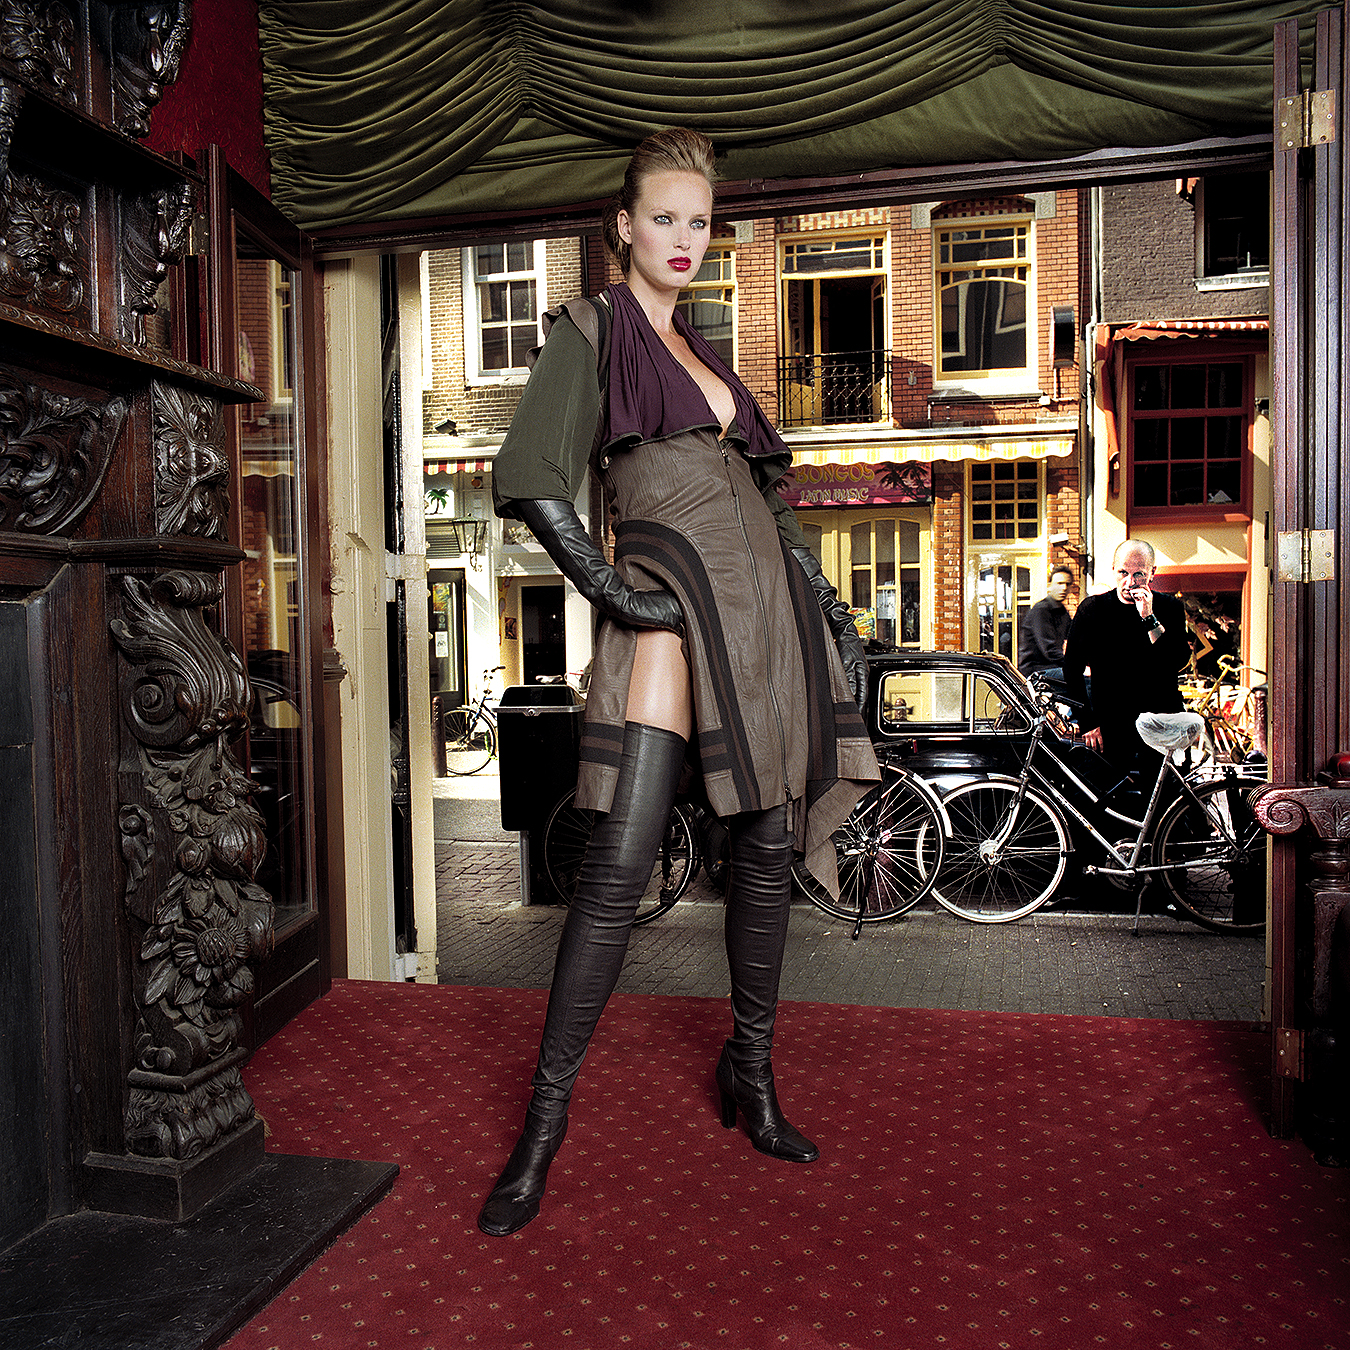 Tony_Ward_Fashion_photography_Amsterdam_Spoon_Magazine_model_Esther_Young_creative_director_Sascha_Lilic